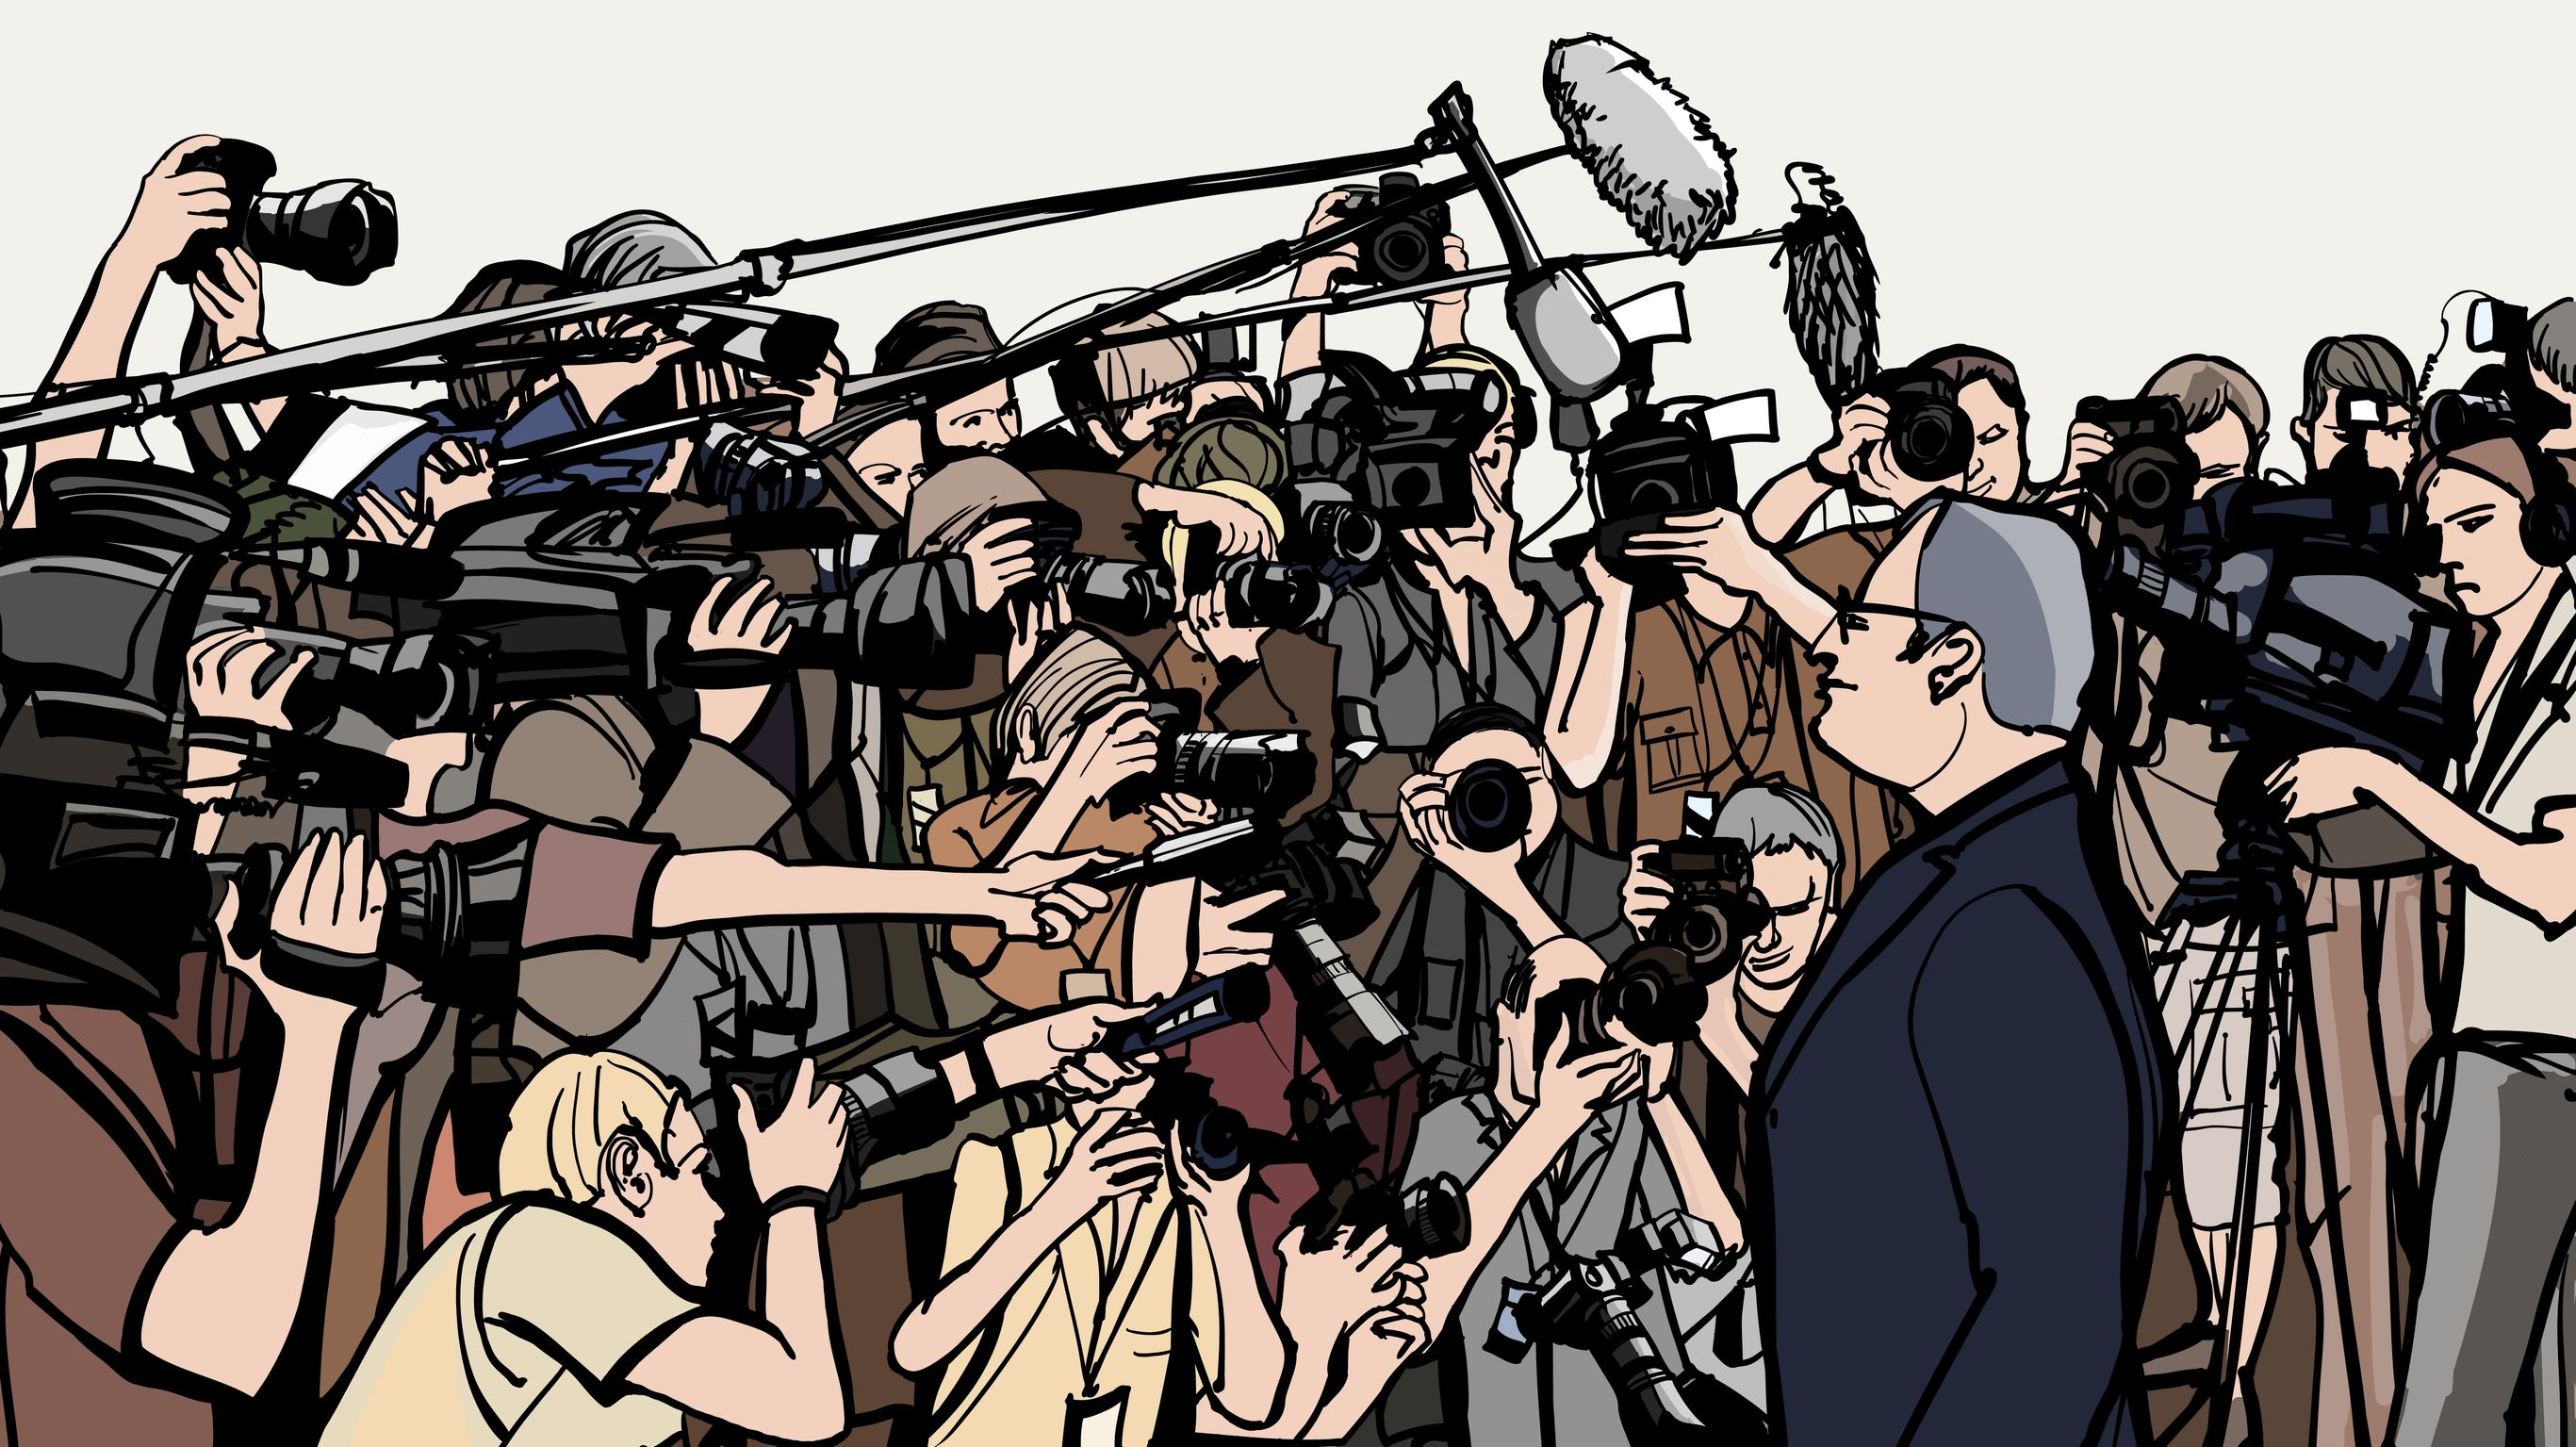 Graphic: All the statistics every startup should know before pitching to the media